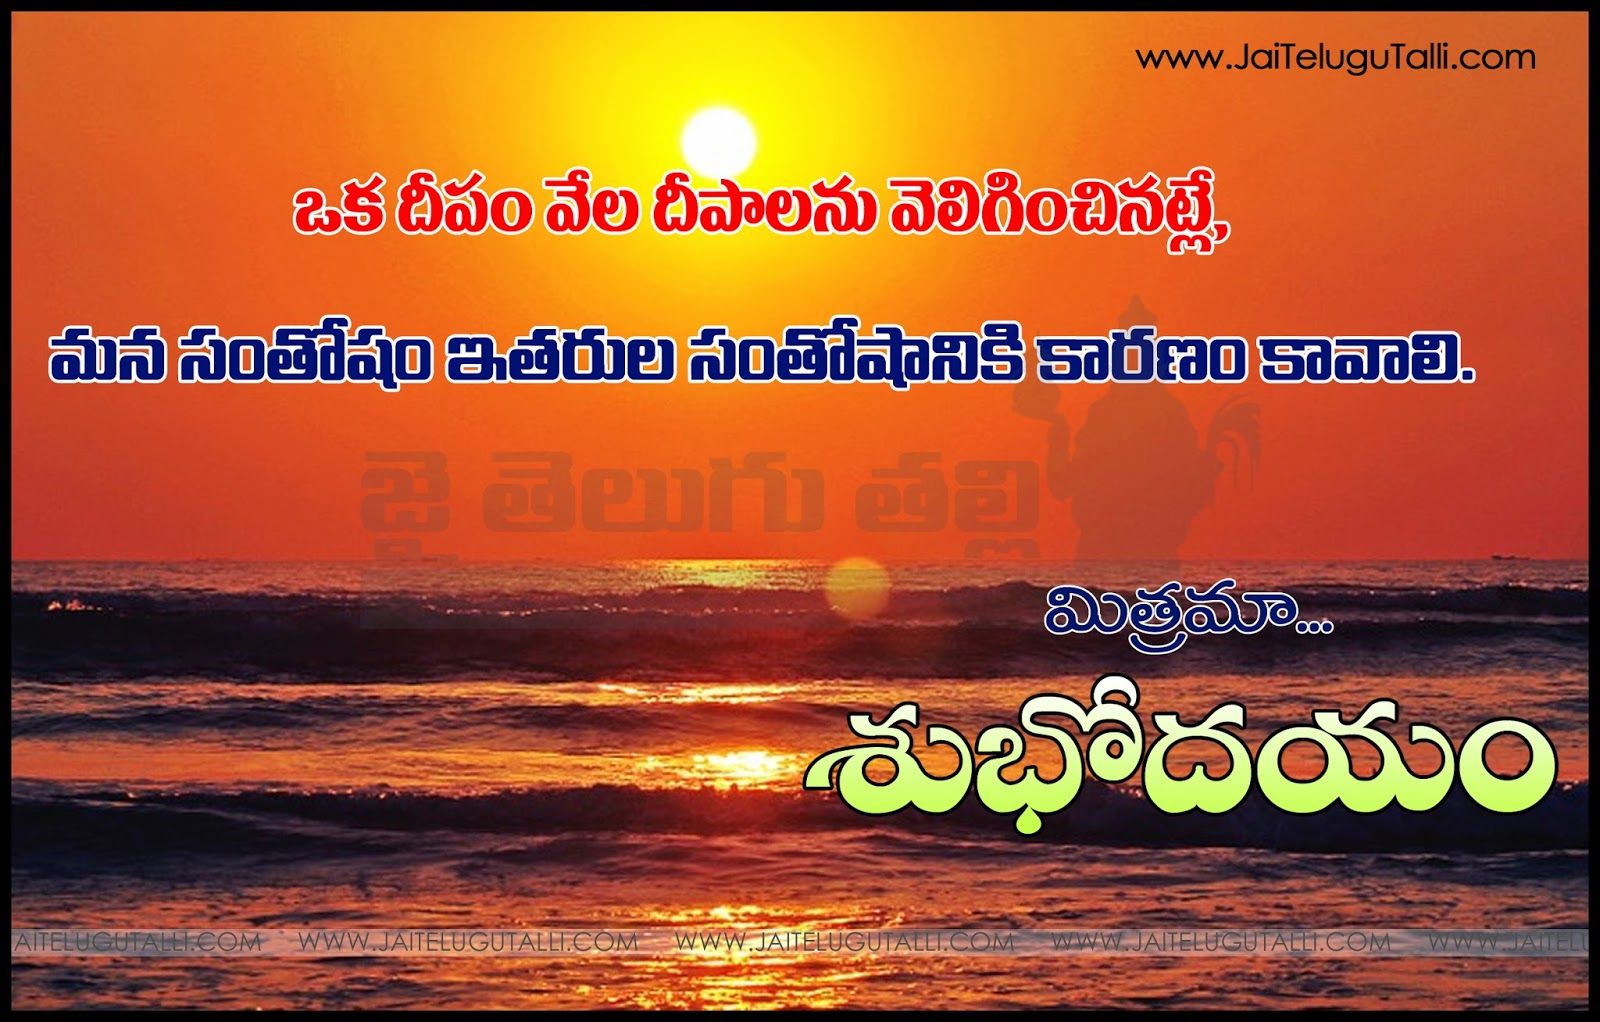 Telugu Quotations Images And Good Morning Greetings Www